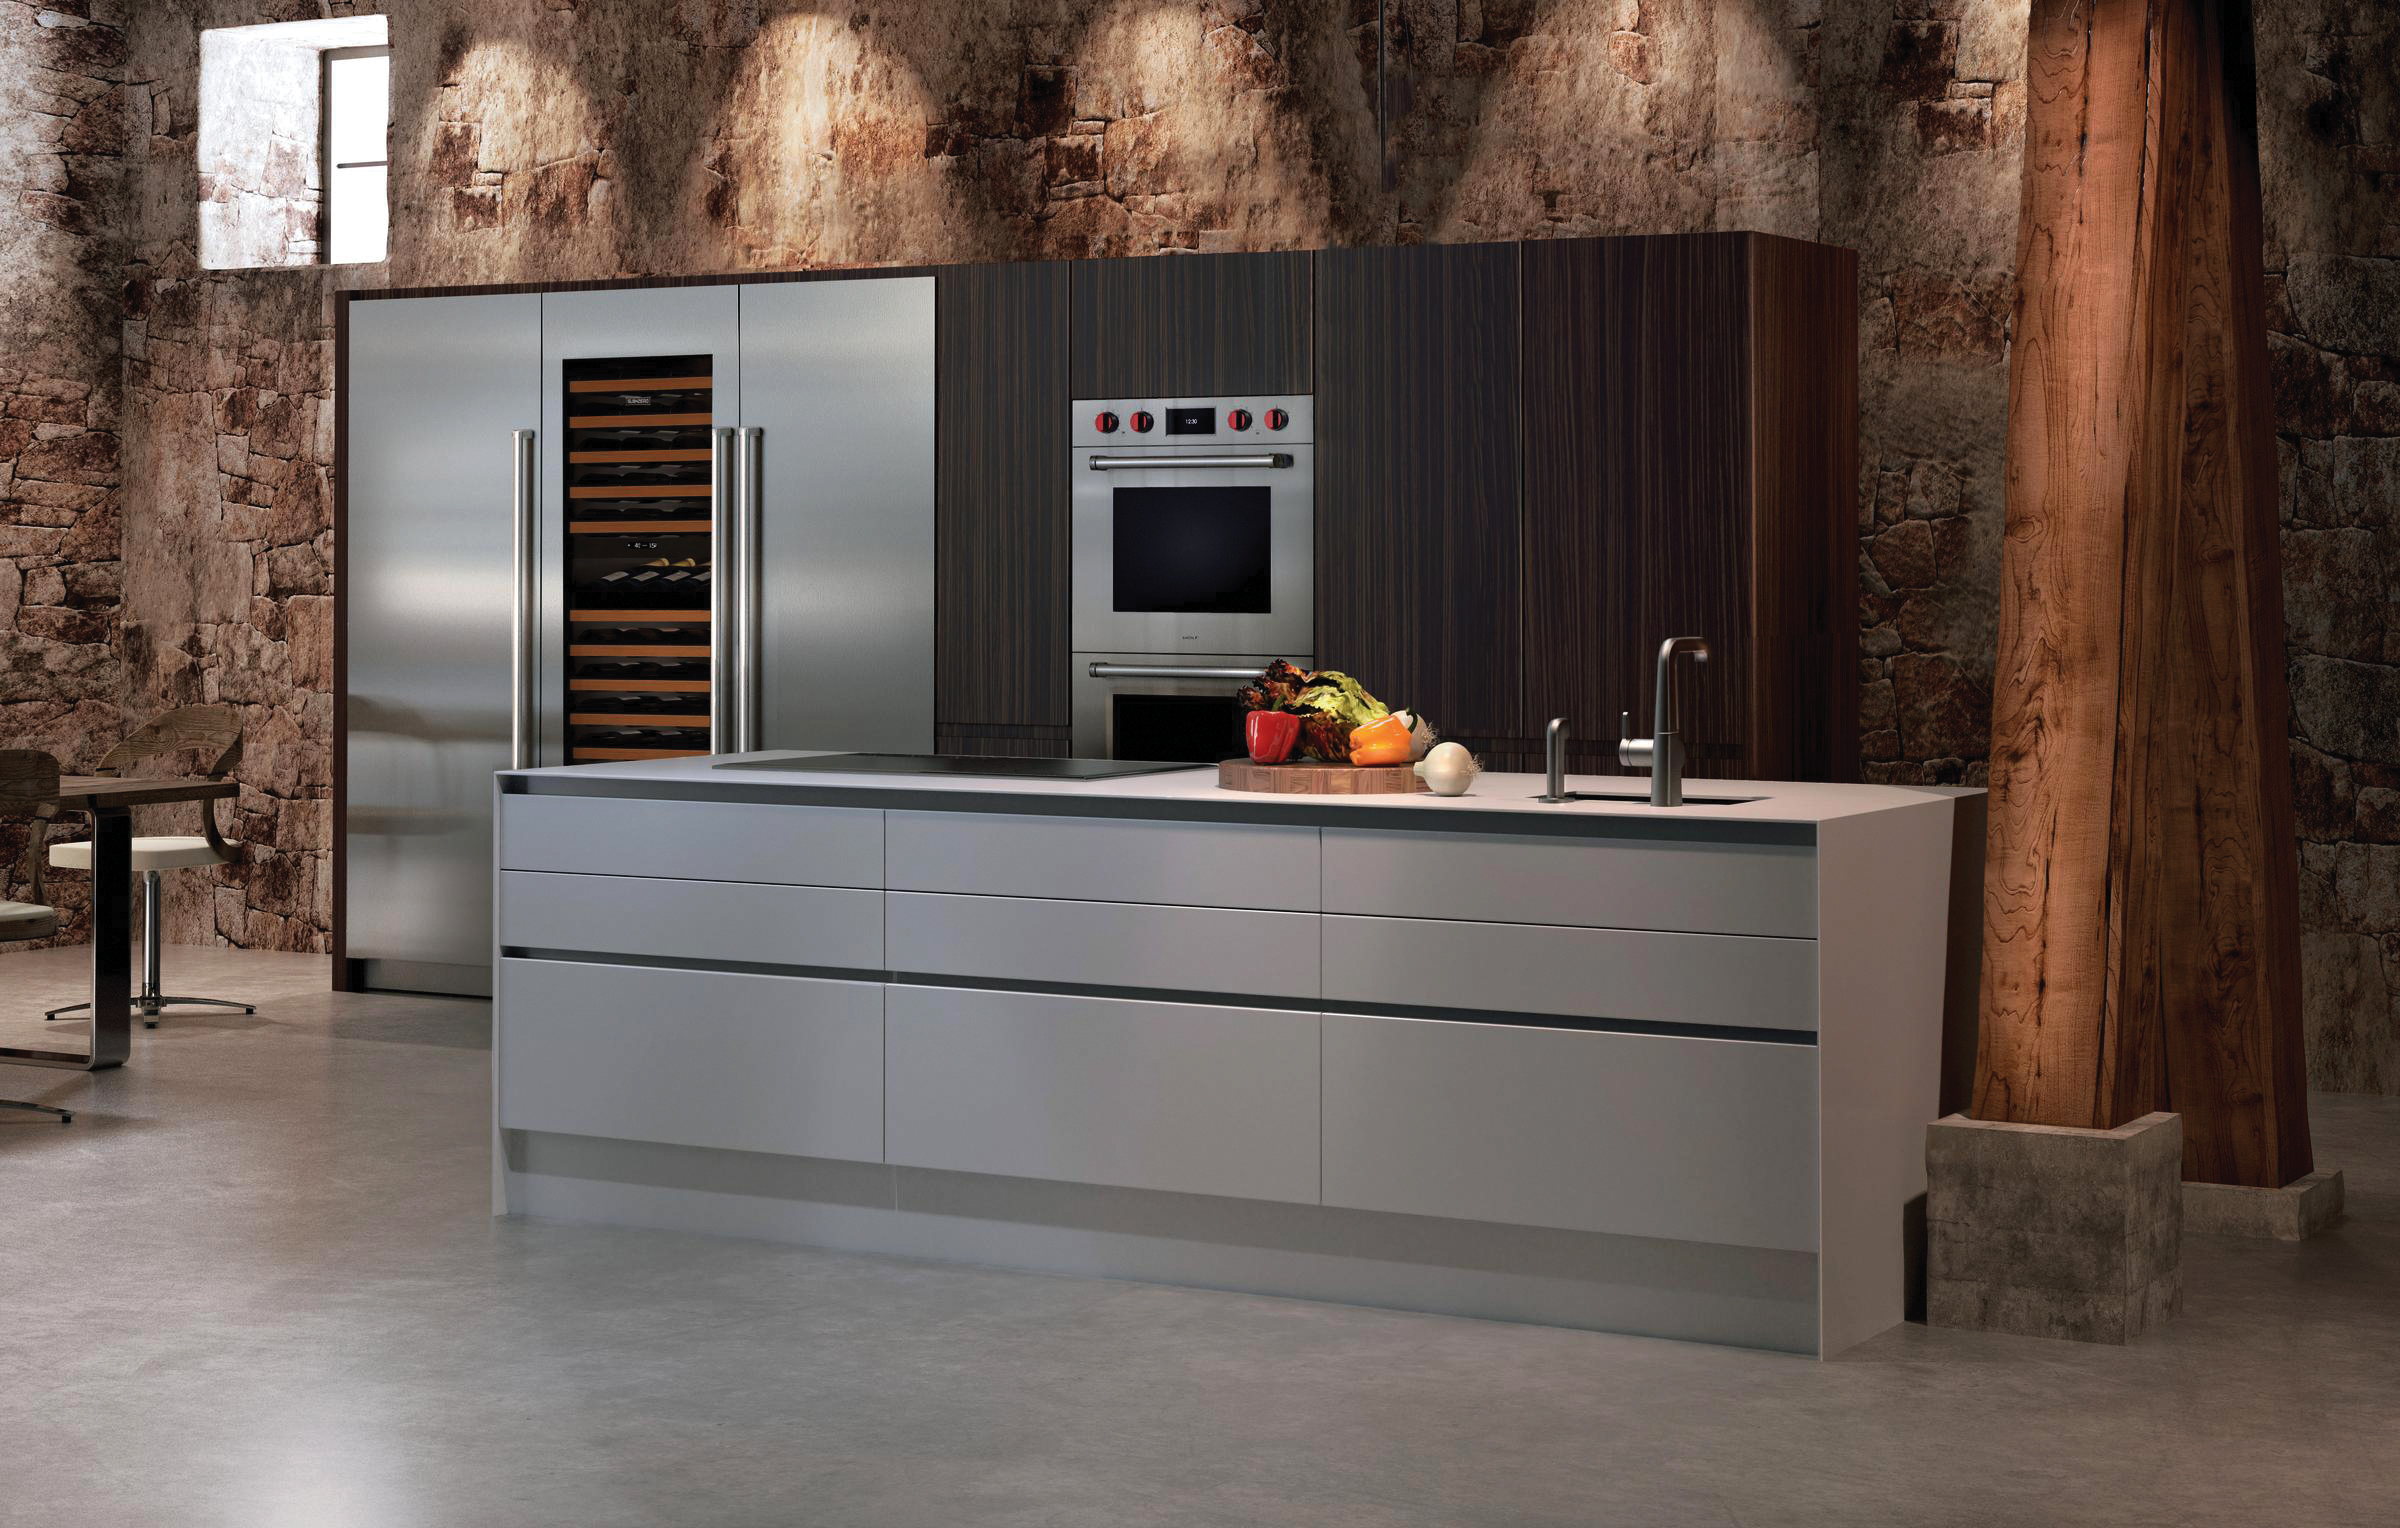 3 - BUILT-IN M SERIES PROFESSIONAL DOUBLE OVEN